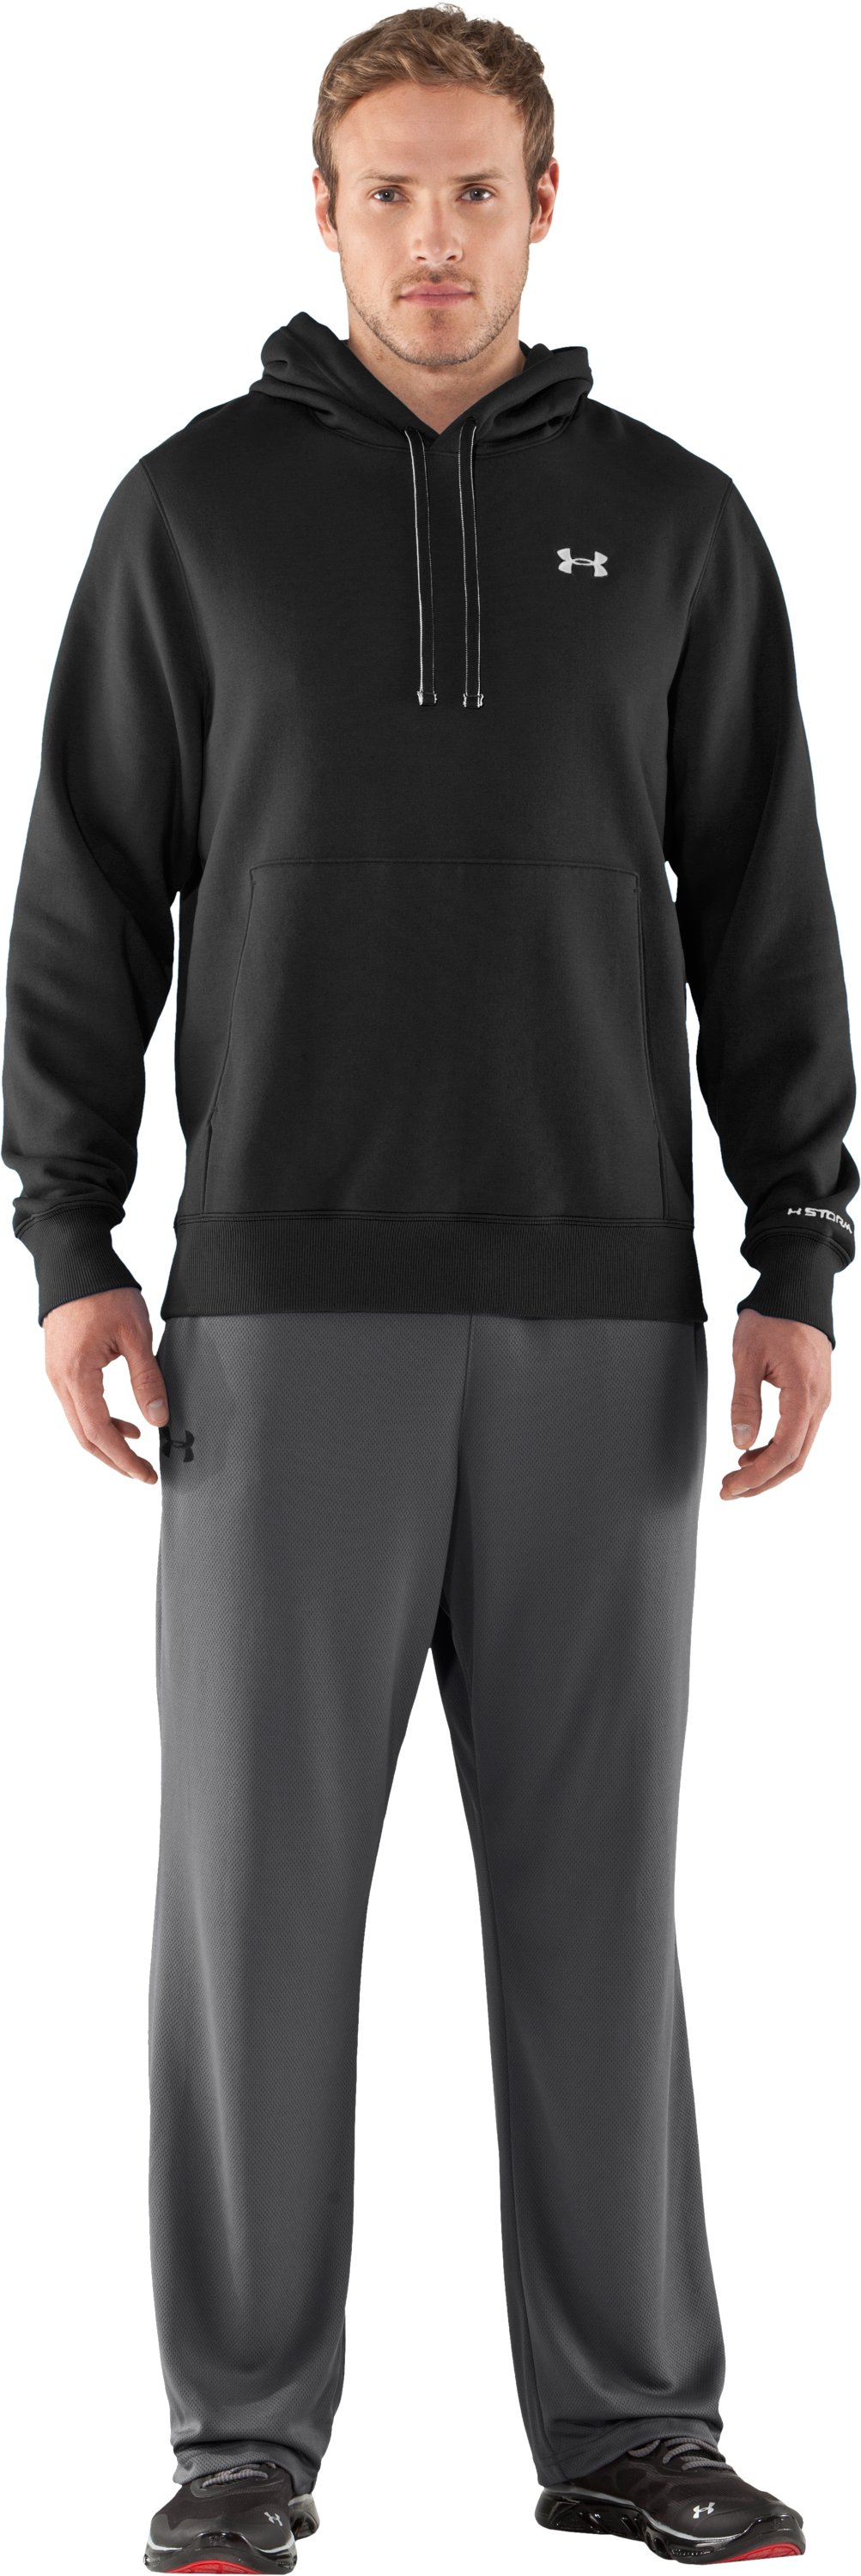 Men's Charged Cotton® Storm Transit Hoodie, Black , zoomed image